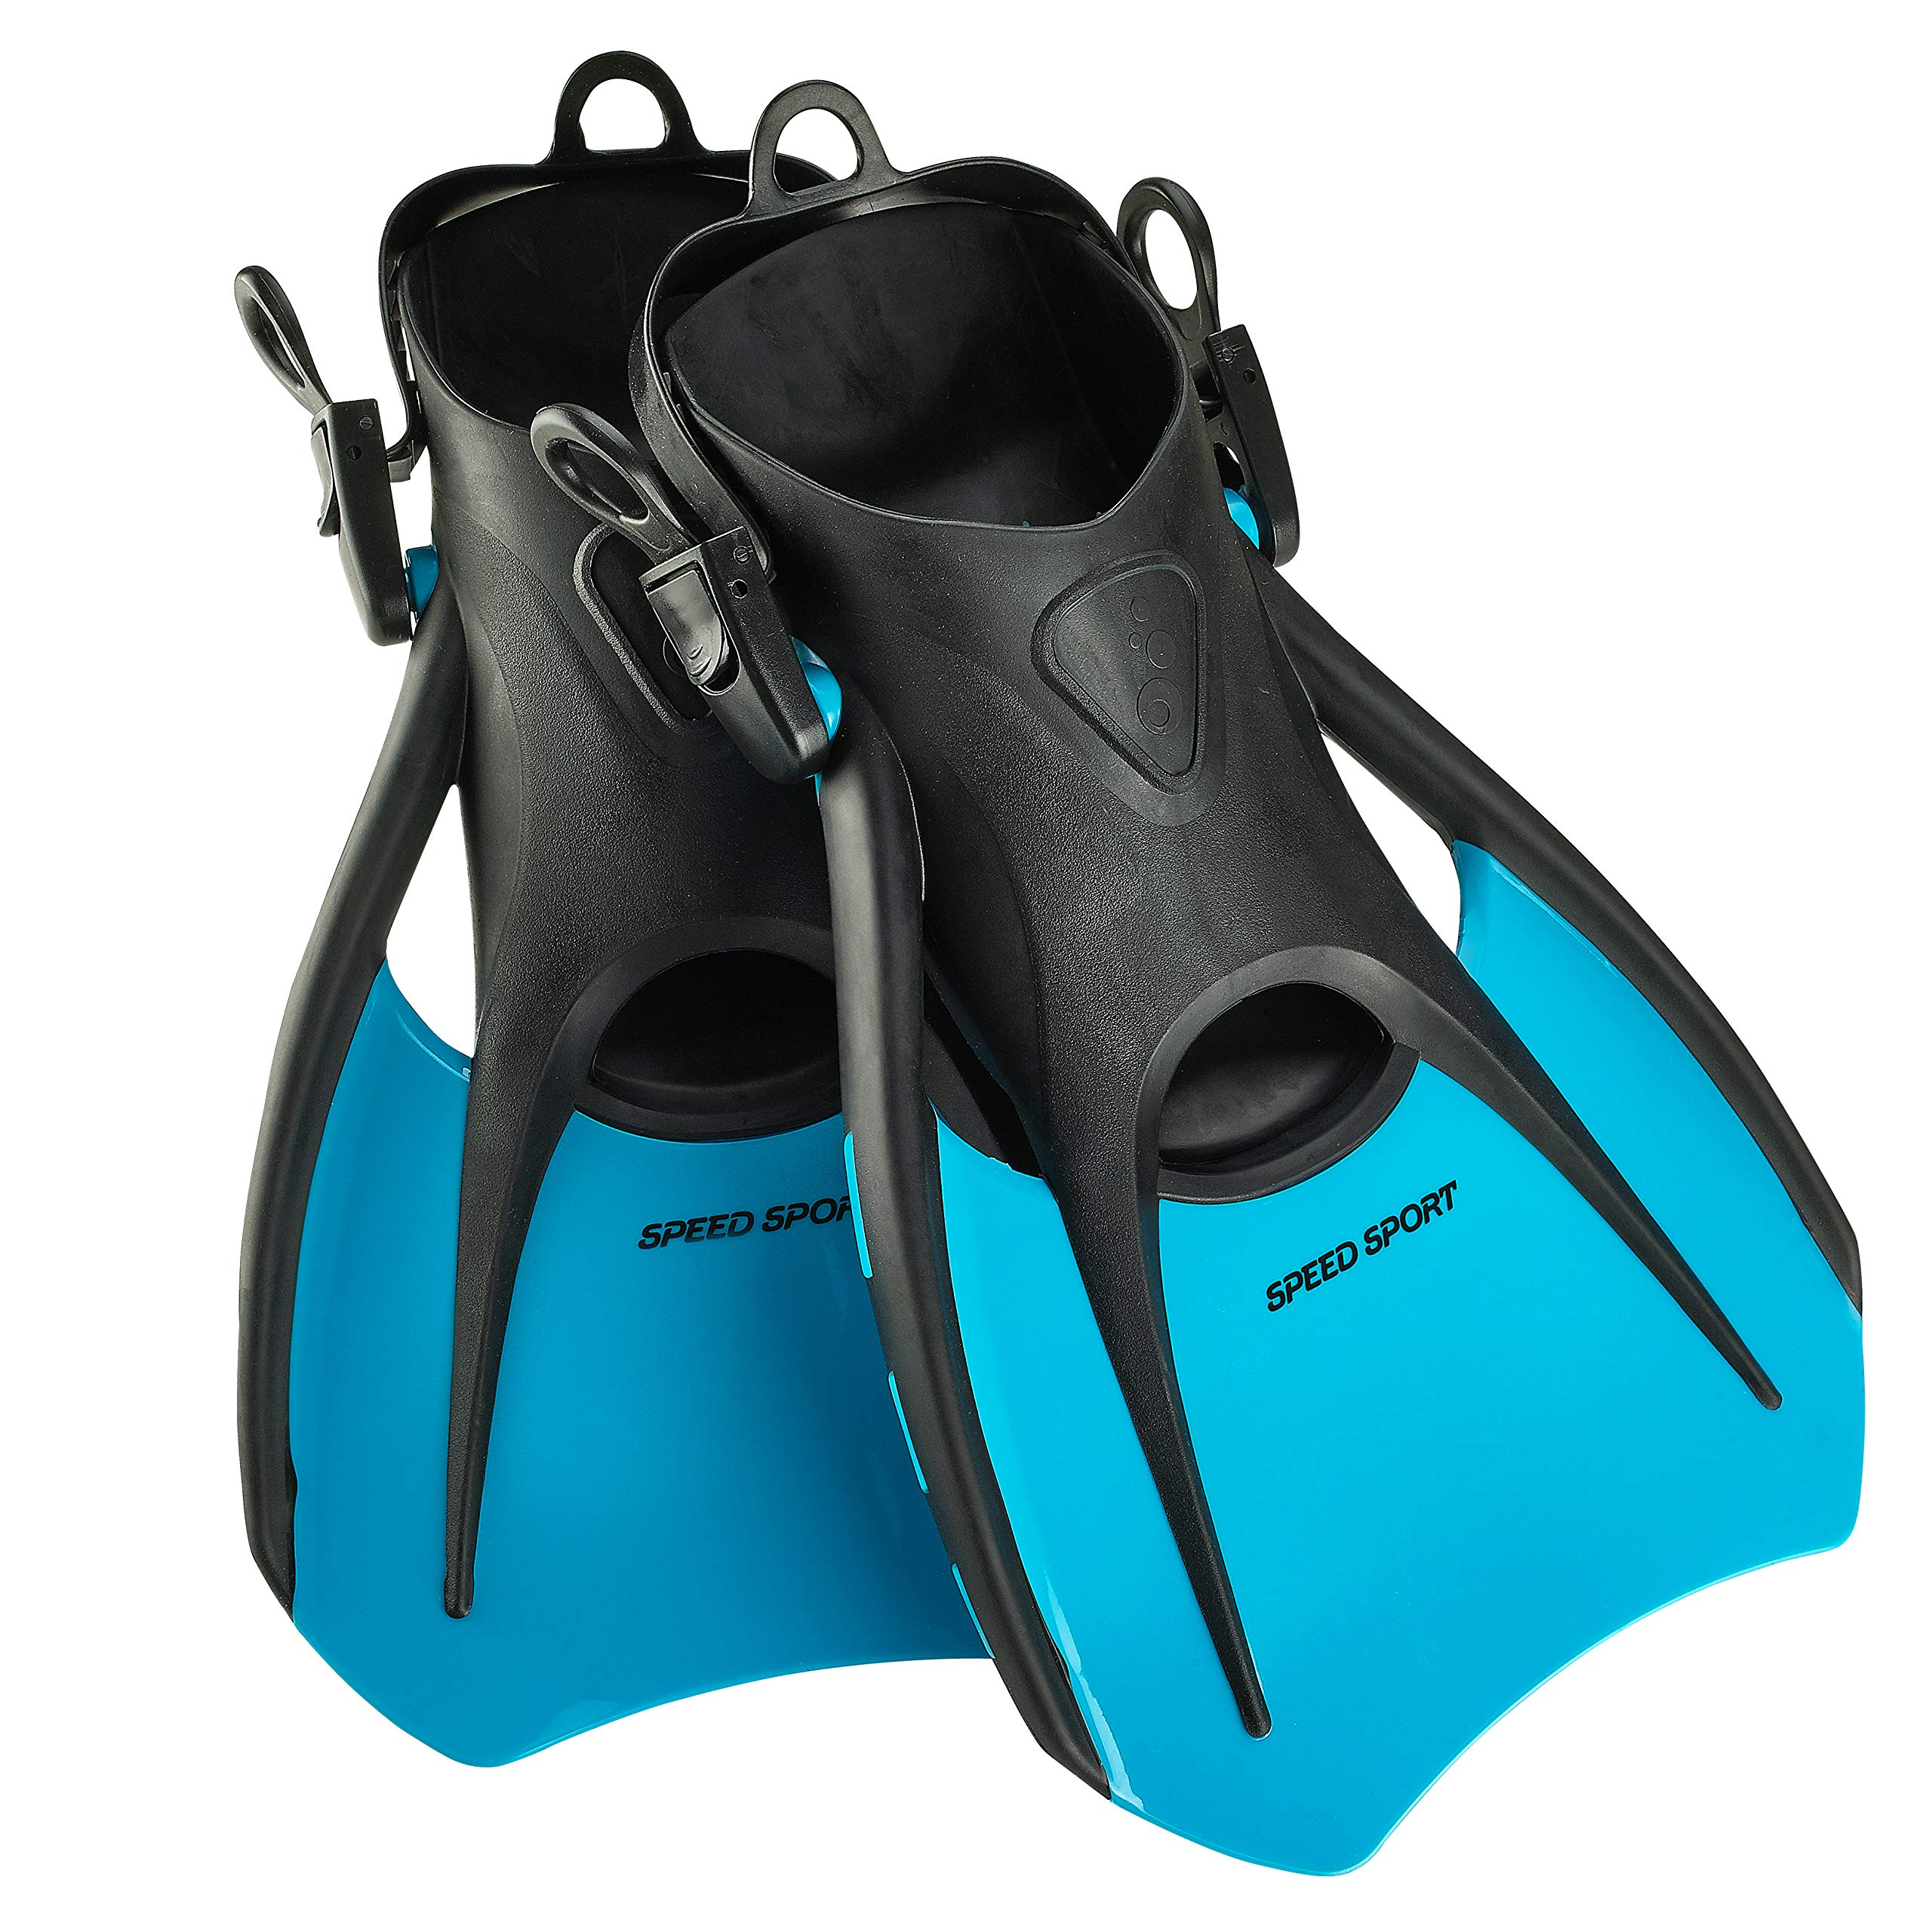 Phantom Aquatics Snorkeling Diving Fins - Open Heel Traveling Sport Fins - AQ-SM